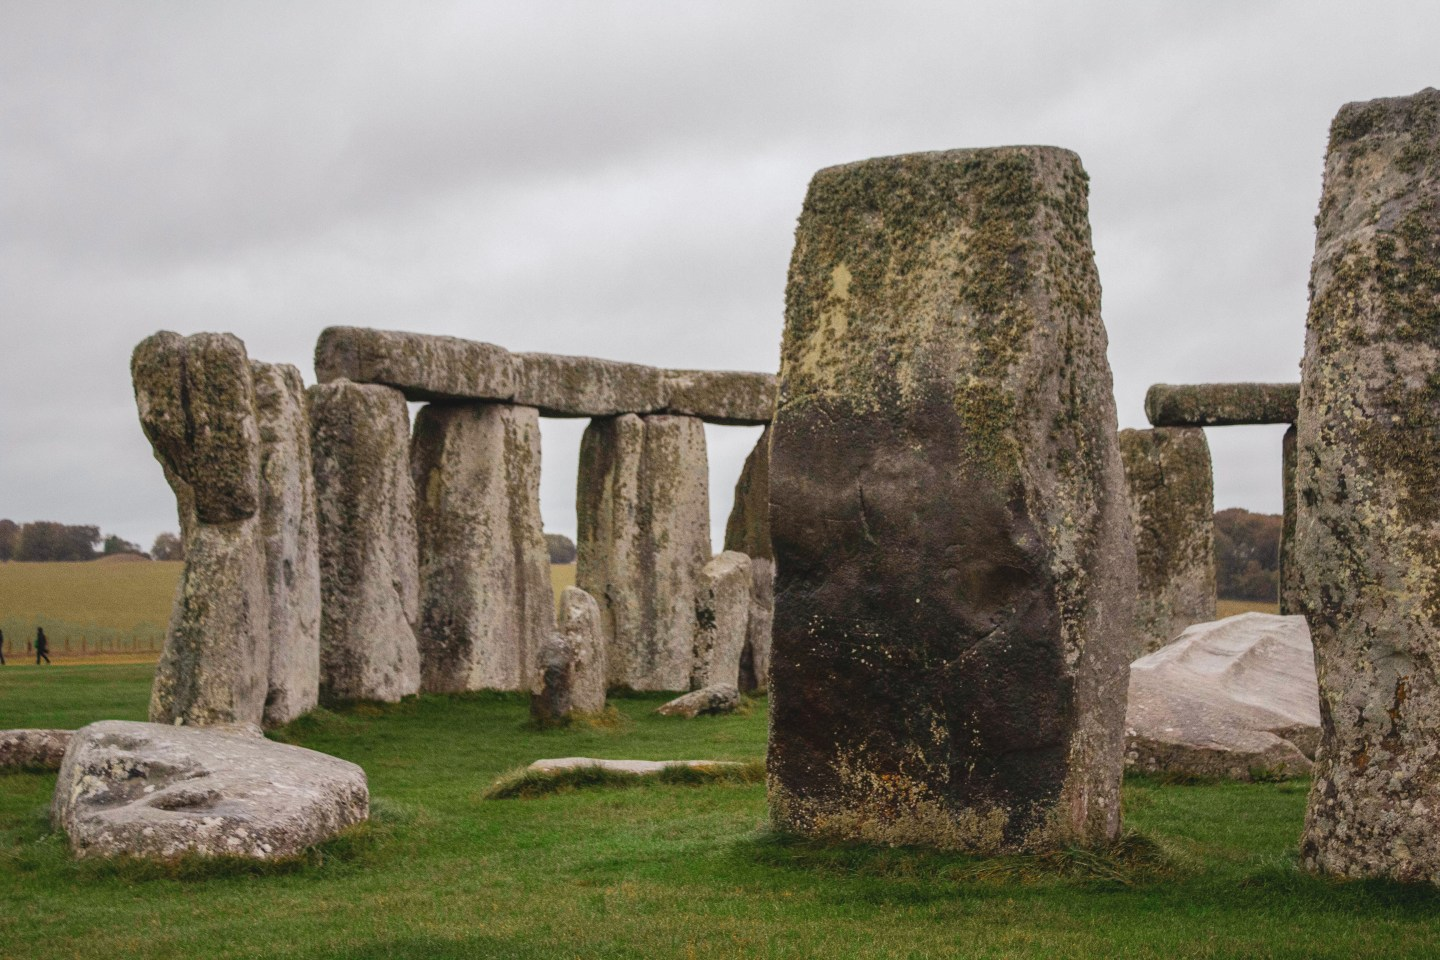 Close up of some of the stones of Stonehenge